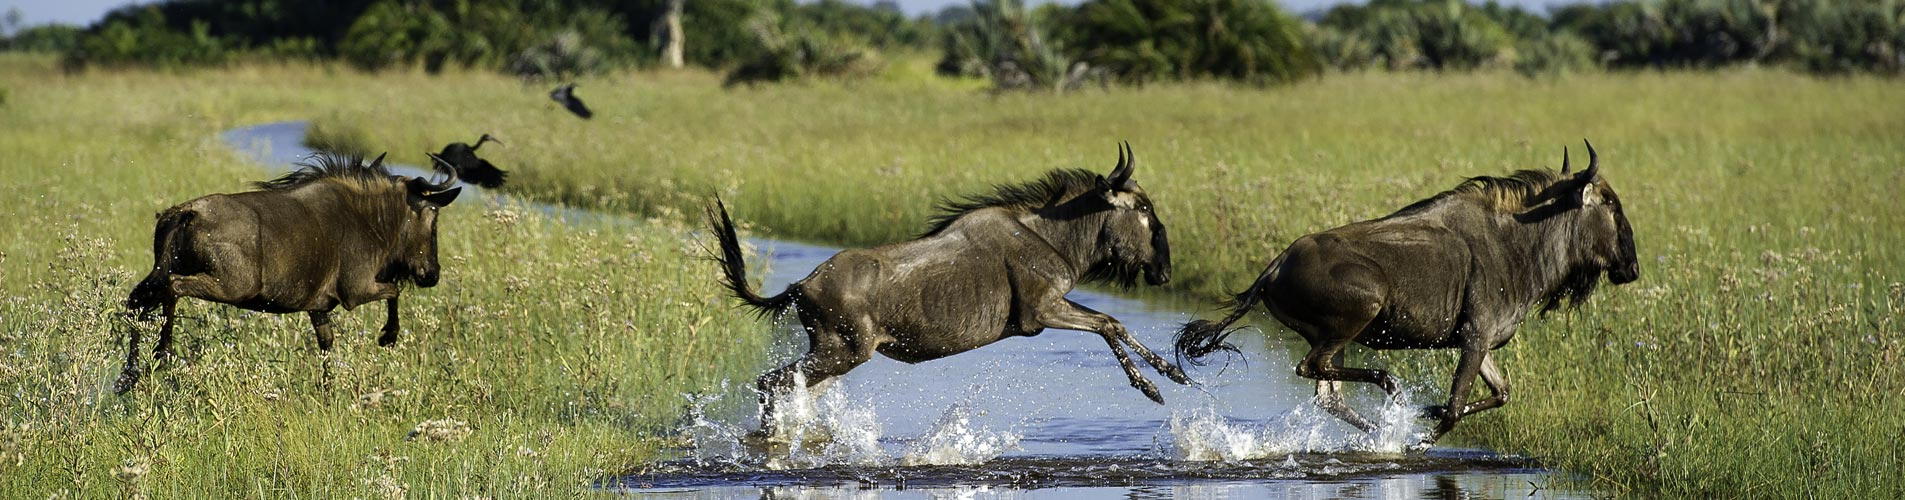 African Safari Adventures Wildebeeste